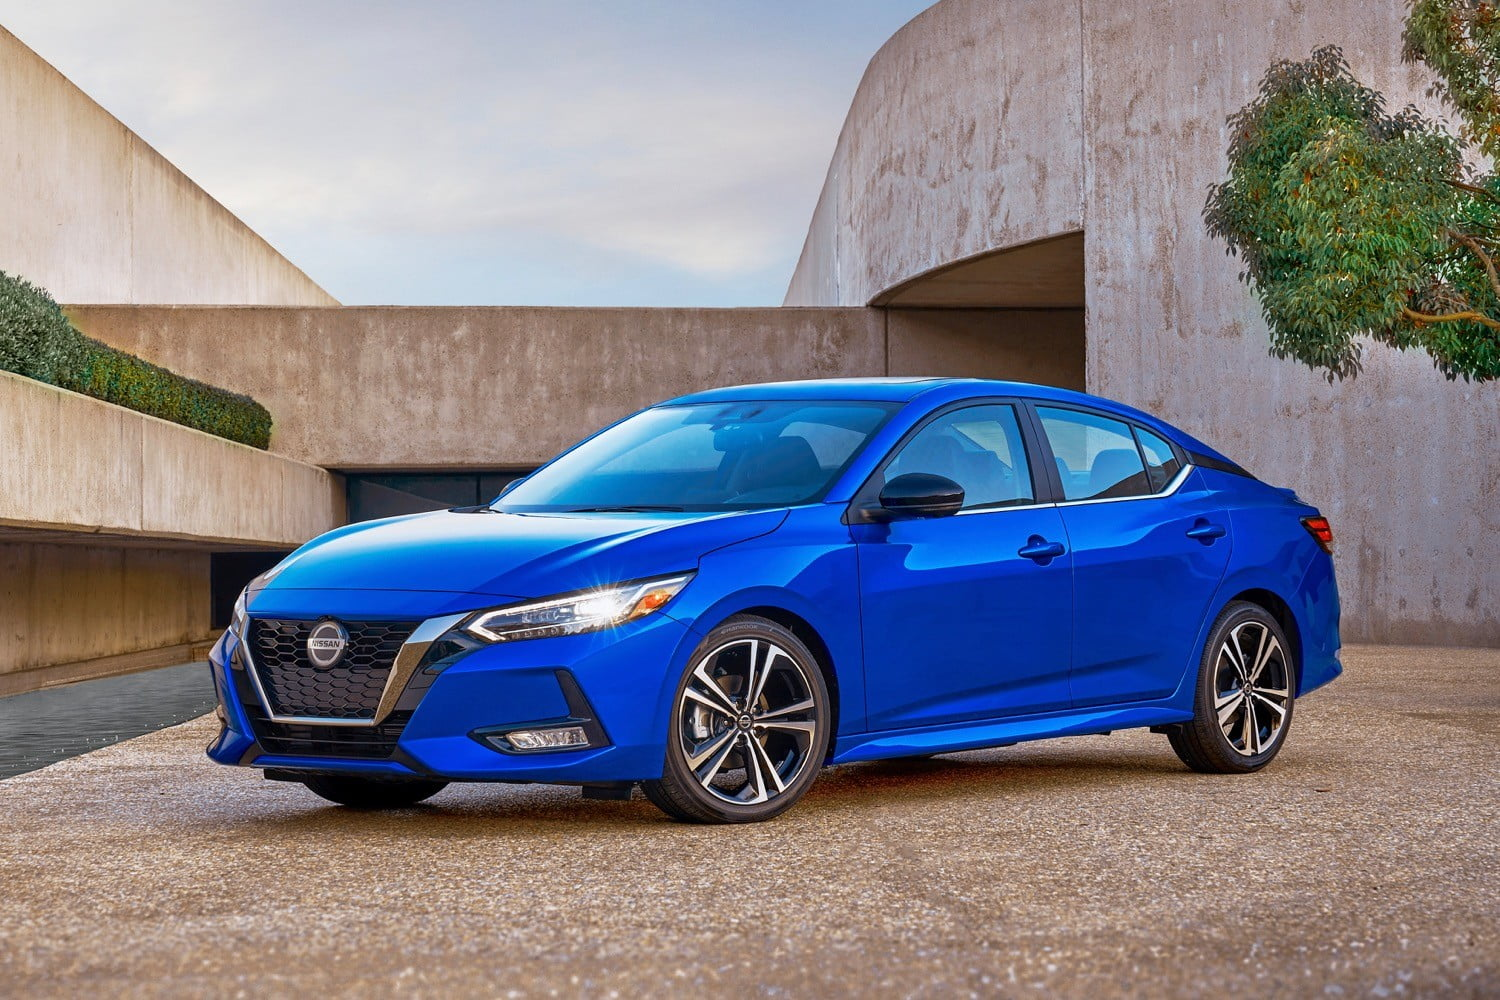 2020 Nissan Sentra banishes boring styling, as well as its turbocharged engine